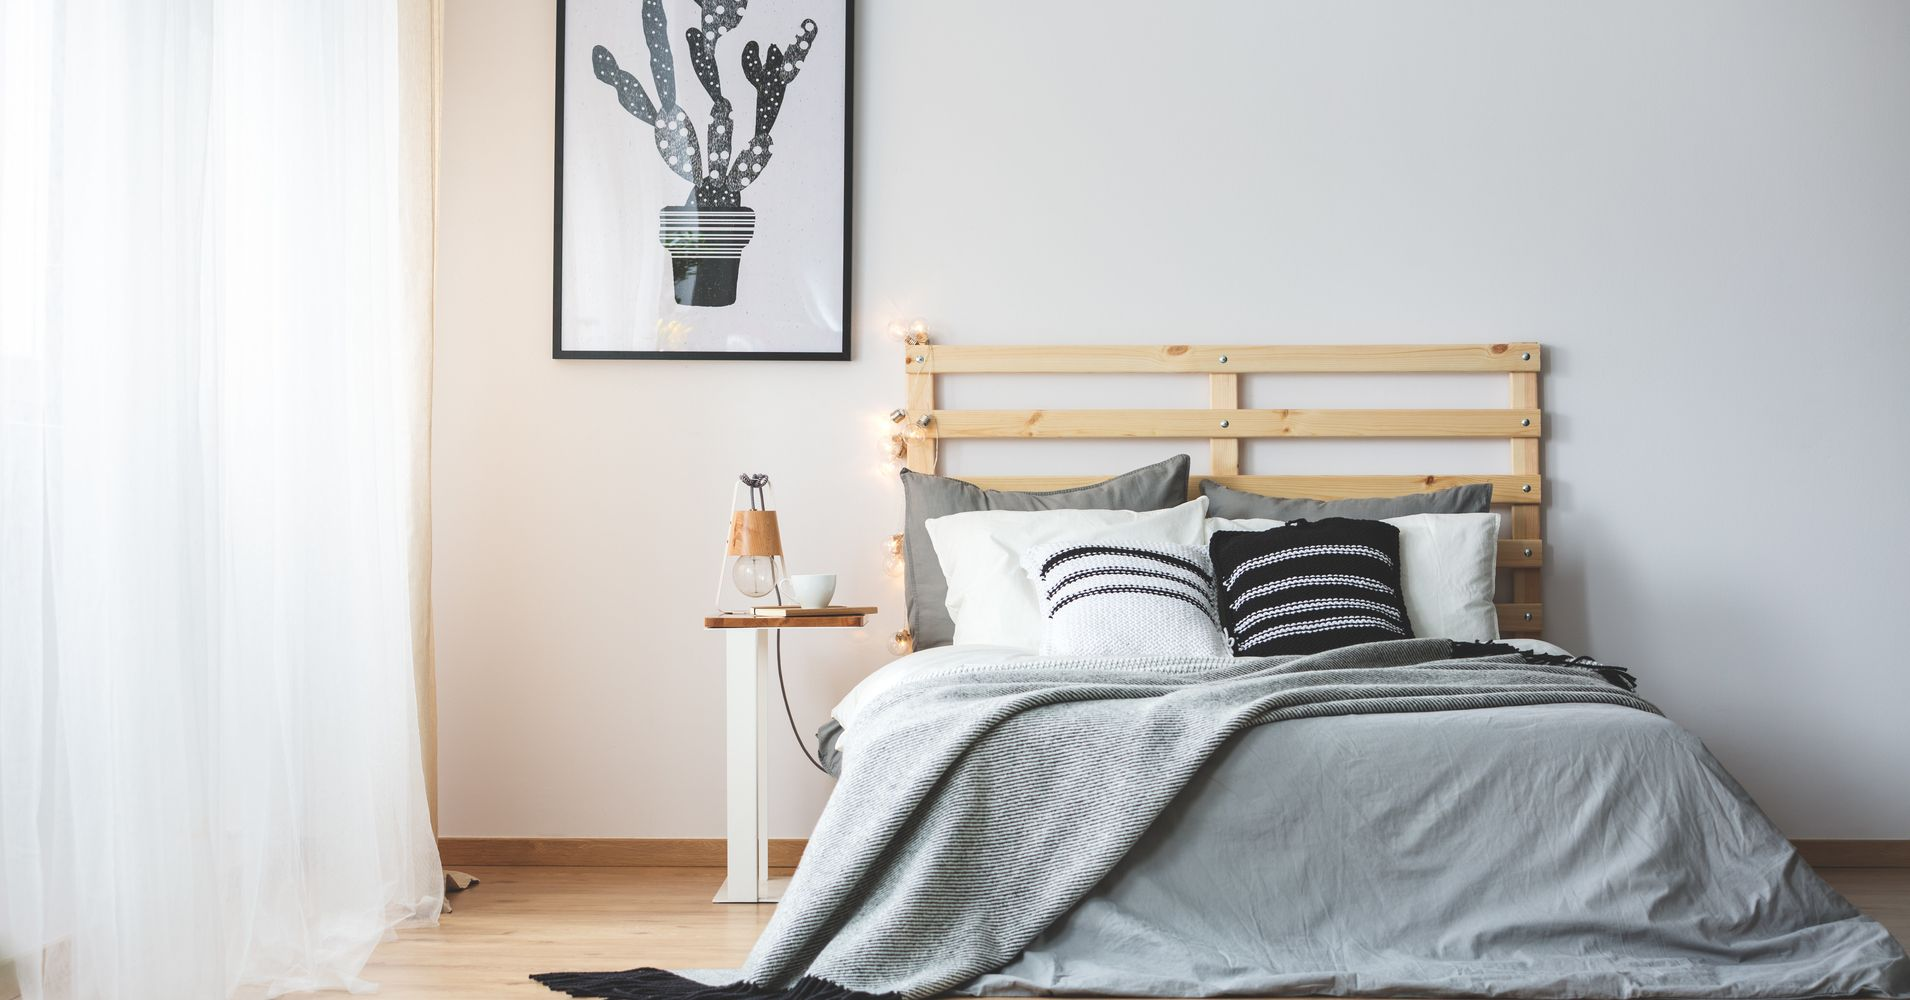 10 minimalist bedroom essentials according to an etsy for Bedroom necessities